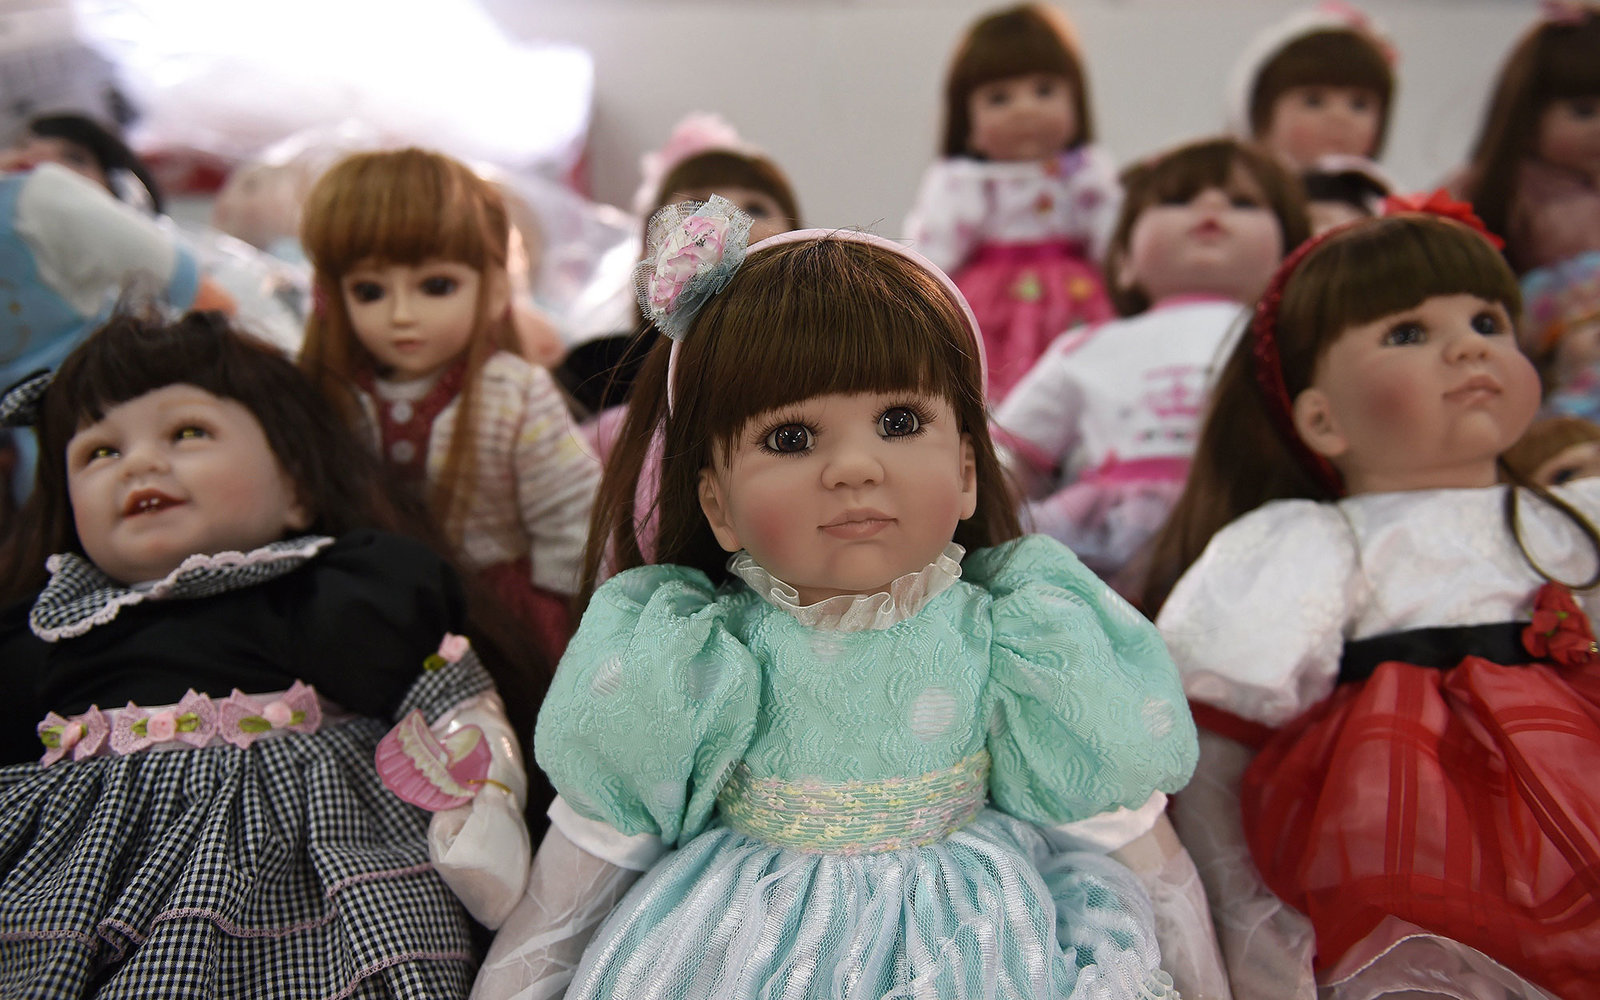 Luuk thep  (child angels) dolls are displayed at the Economic Crime Suppression Division after more than a hundred of them were seized in separate raids, in Bangkok on January 26, 2016. A craze in Thailand for pampering lifelike dolls to bring good fort